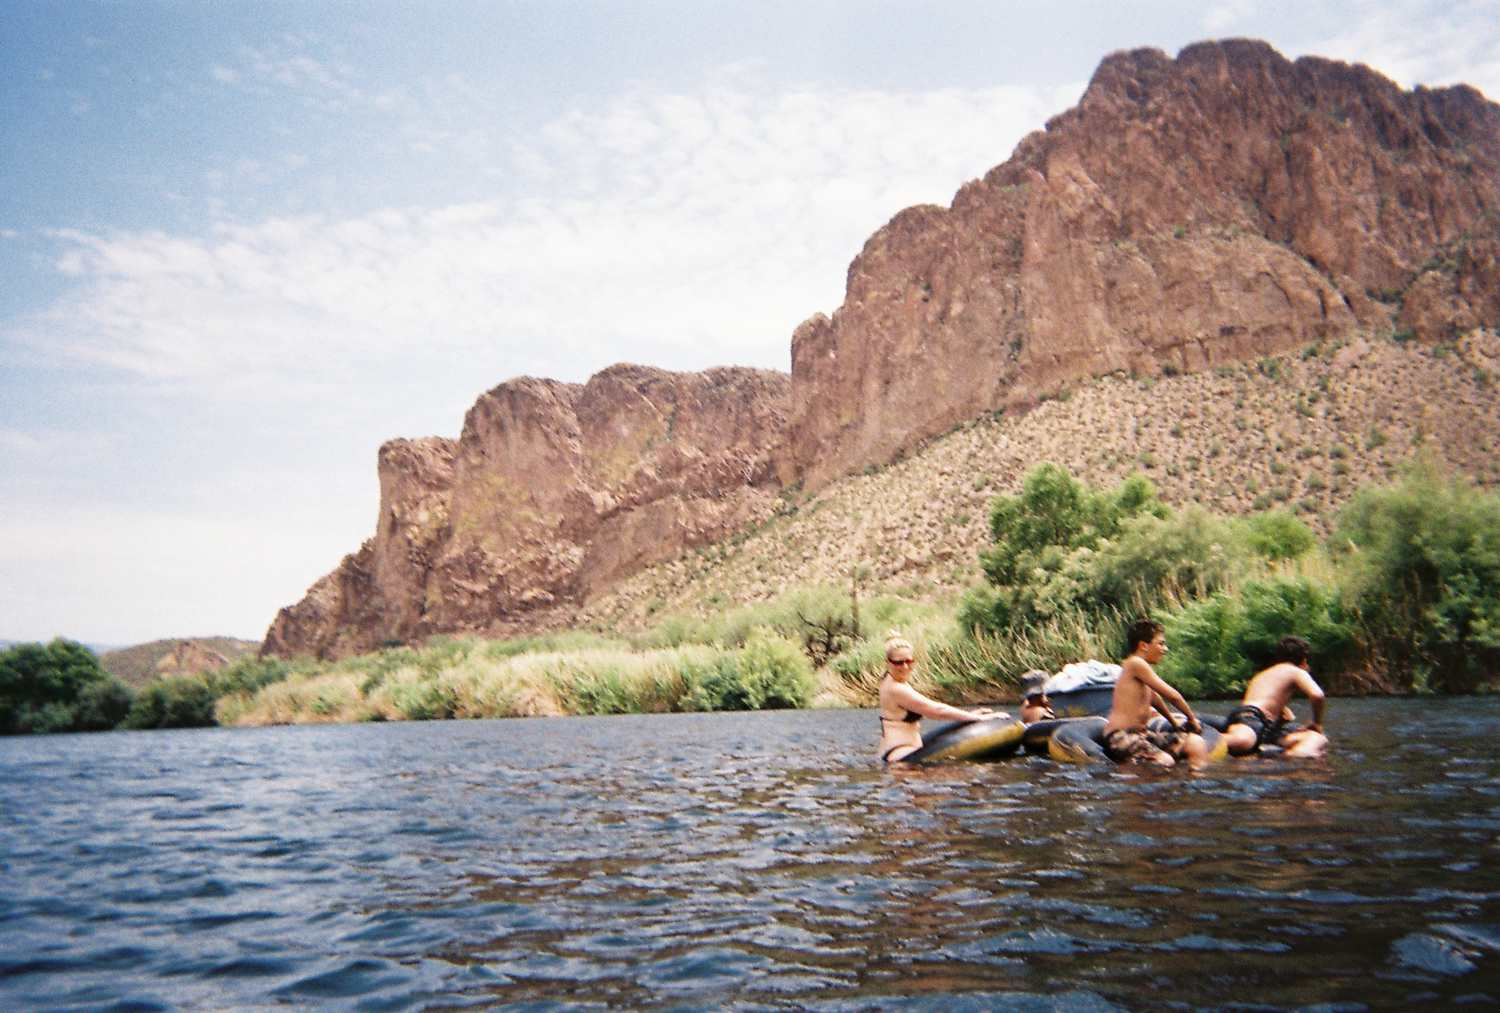 Arizonas Salt River Tubing experience to open after COVID